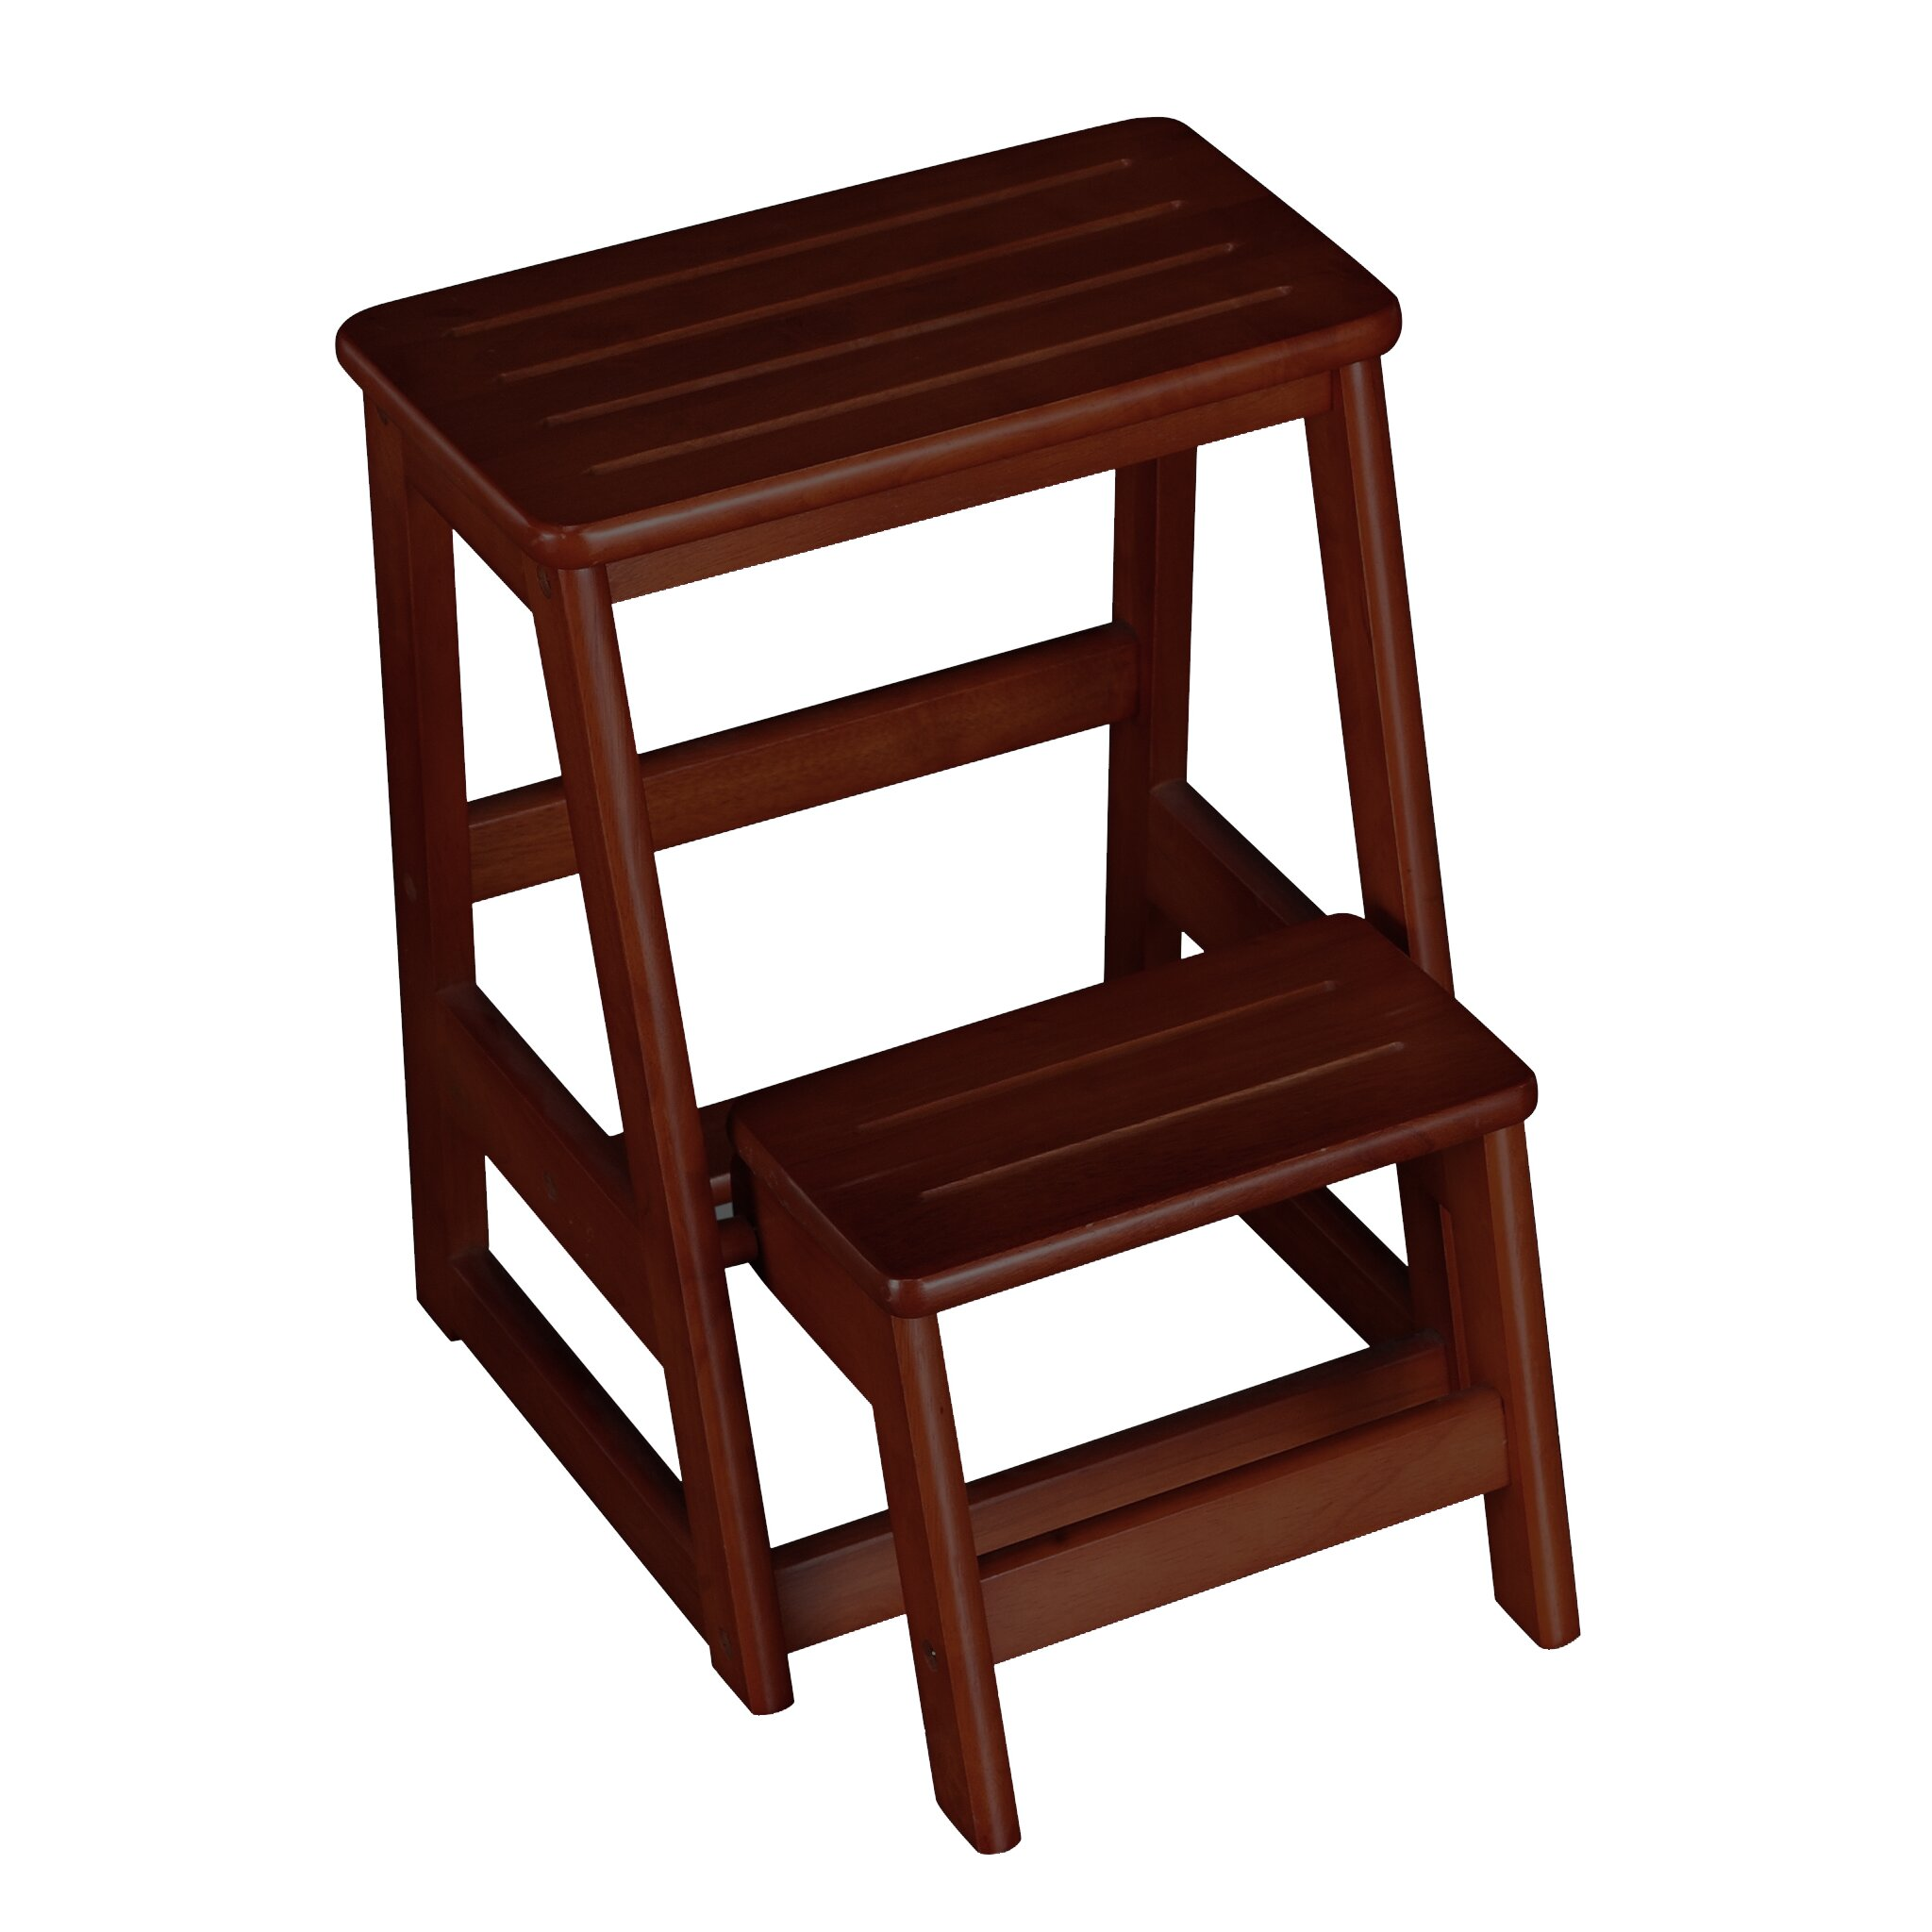 Wonderful image of Folding Compact 2 Step Wood Step Stool CST35685.jpg with #381008 color and 2048x2048 pixels